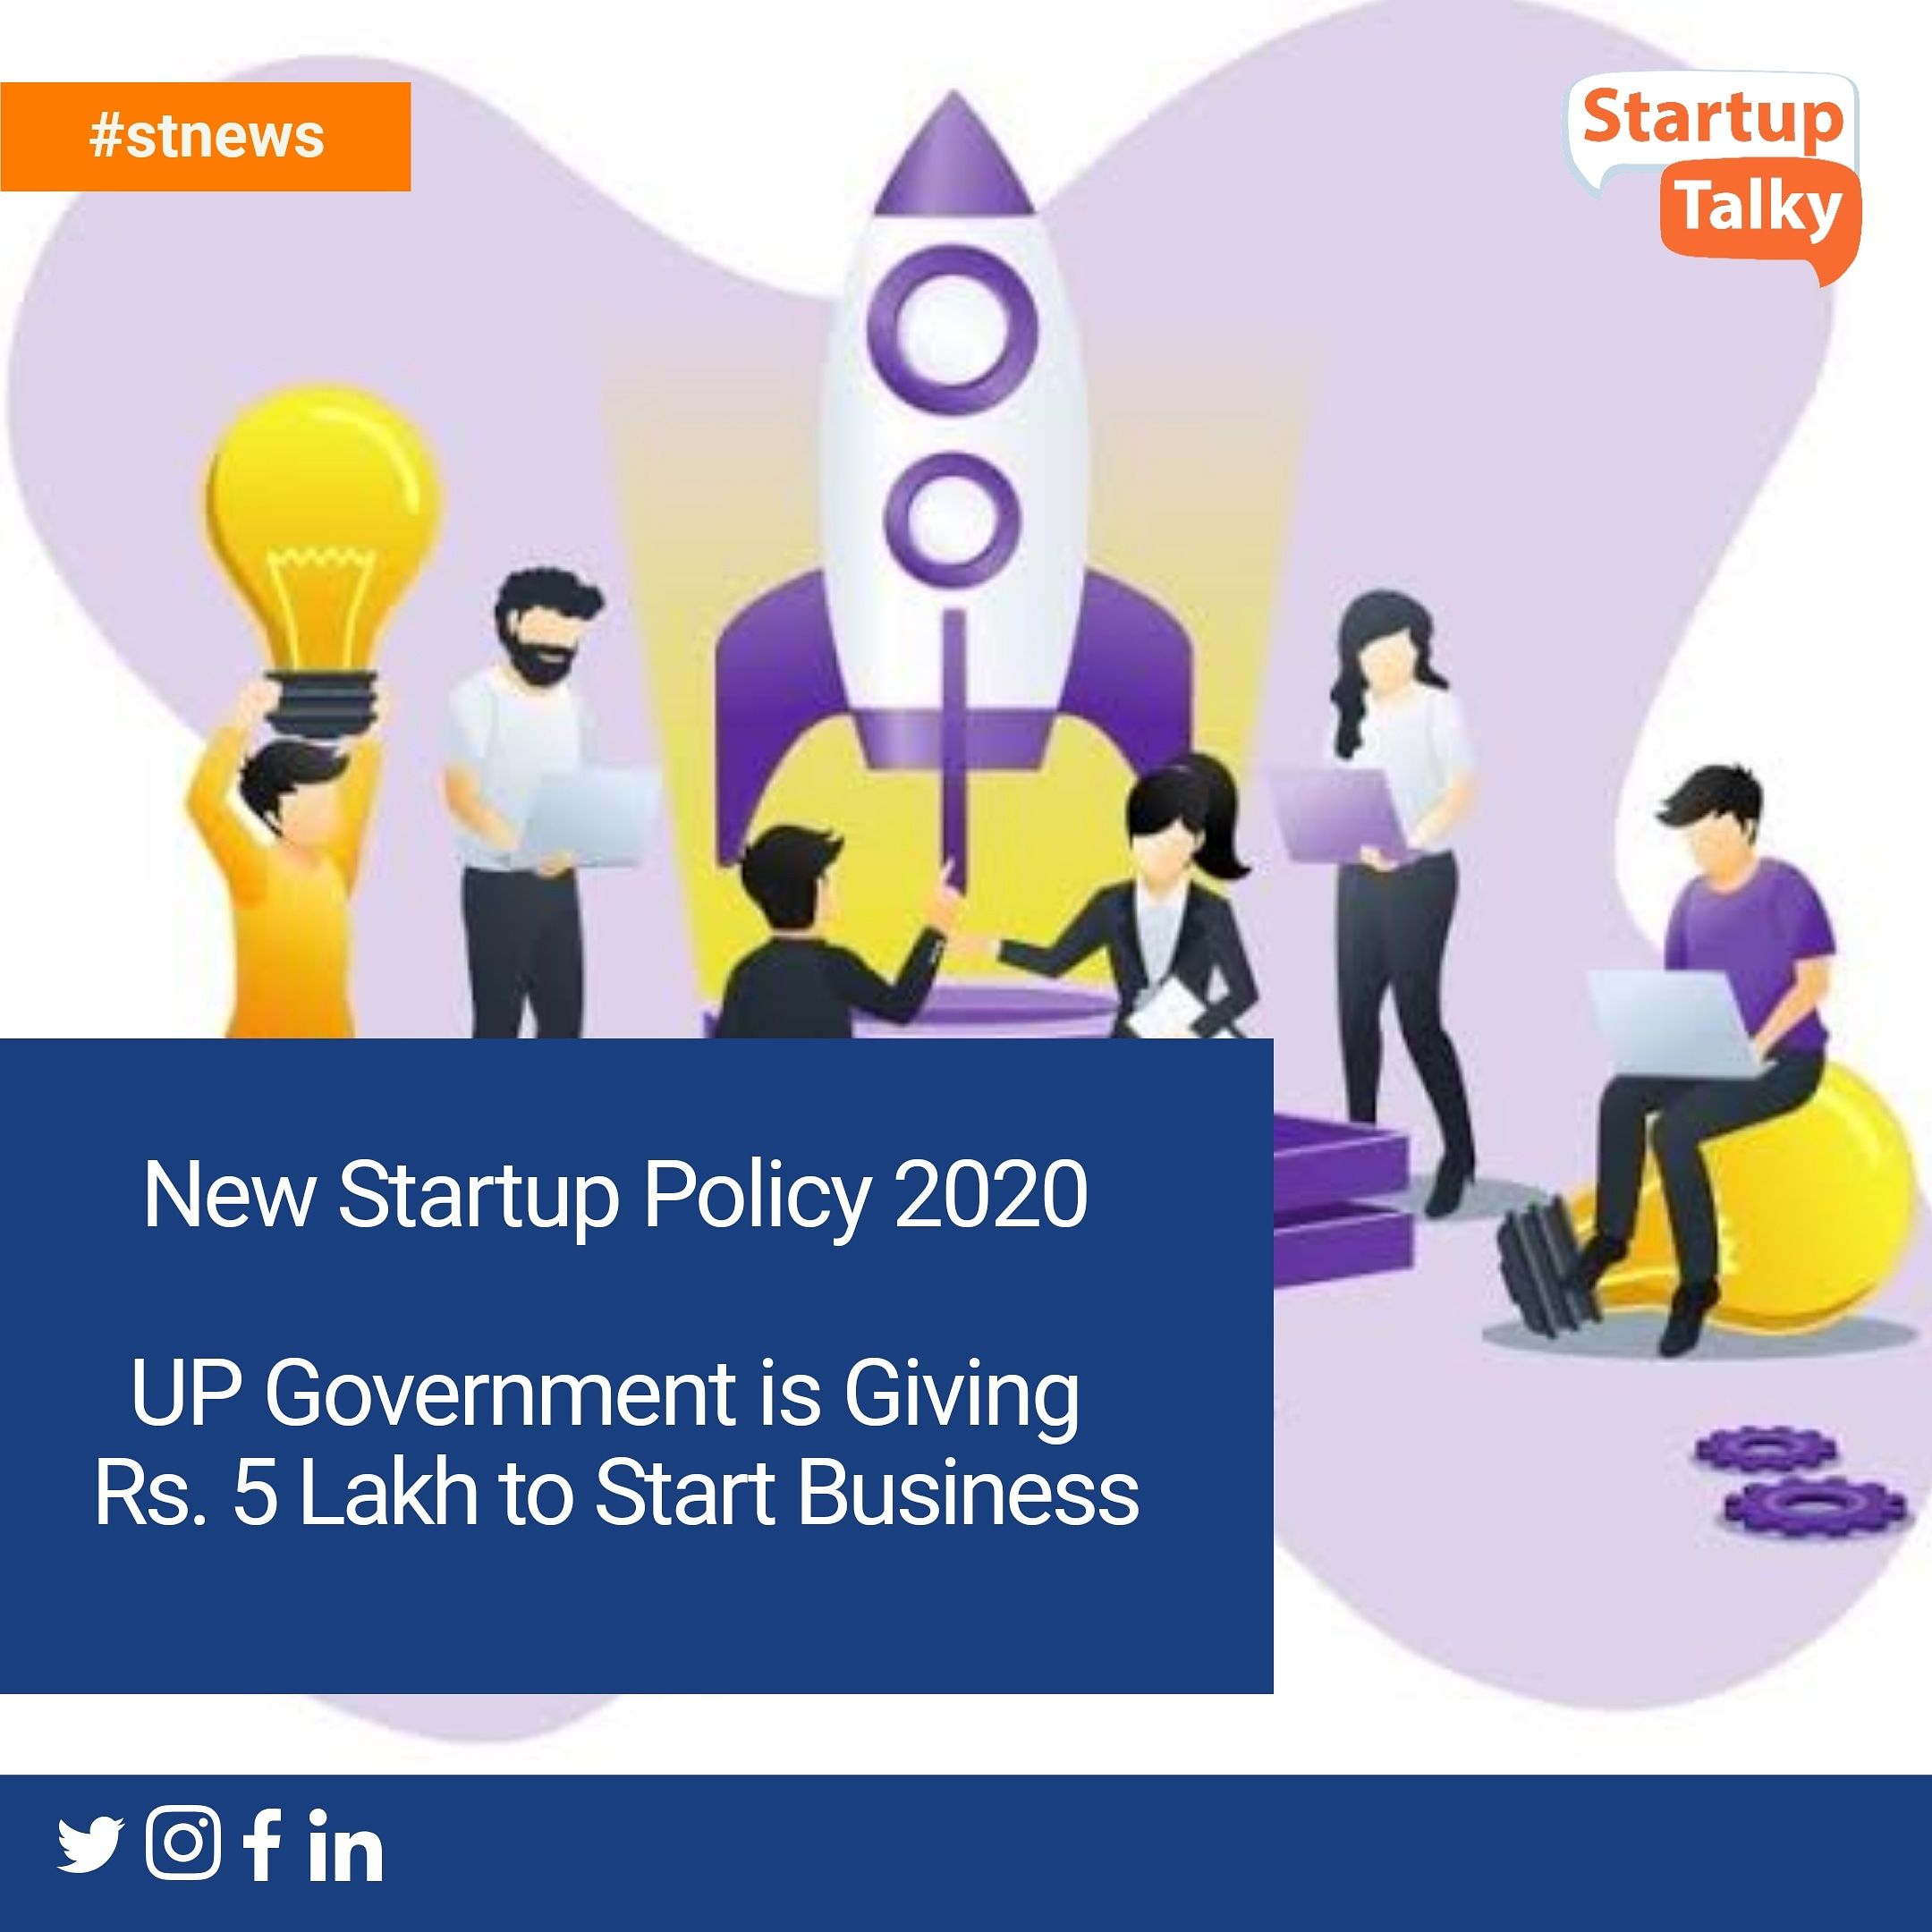 New Startup Policy Govt Is Giving Rs 5 Lakh To Start Business Know How To Avail The Benefit Techiexpert Com Start Up Starting A Business Start Up Business